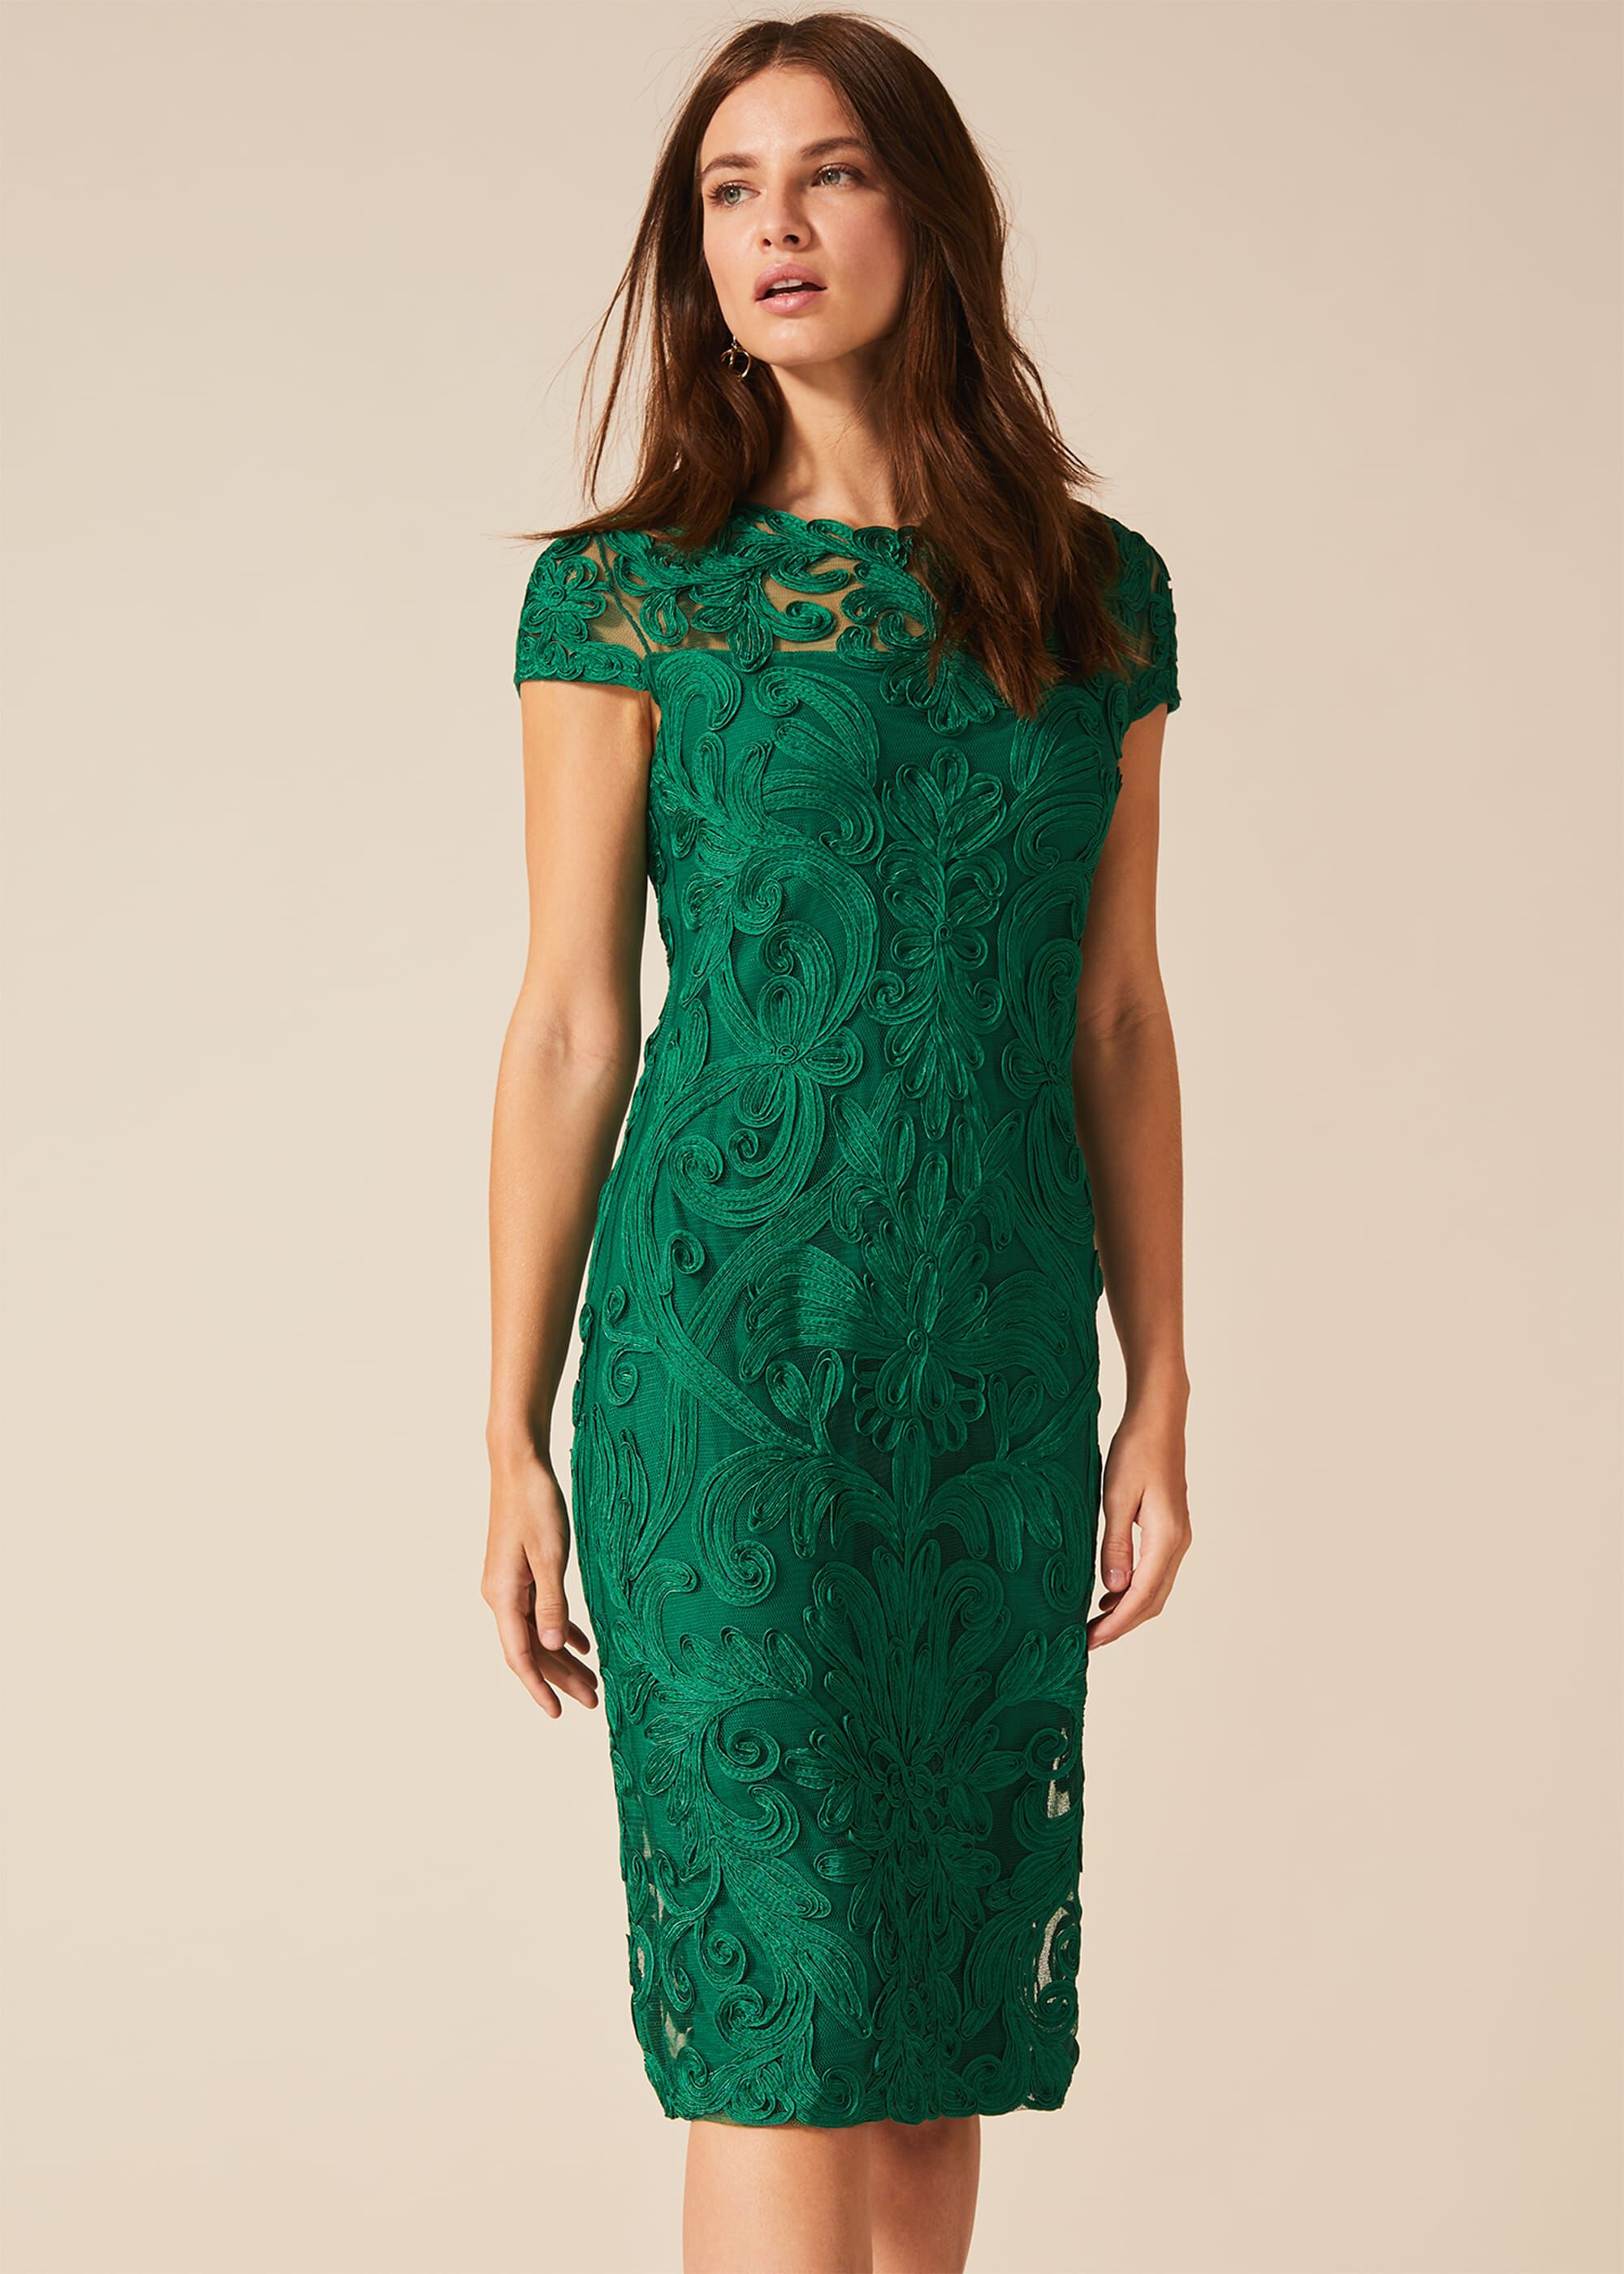 Phase Eight Chantal Tapework Dress, Green, Shift, Occasion Dress